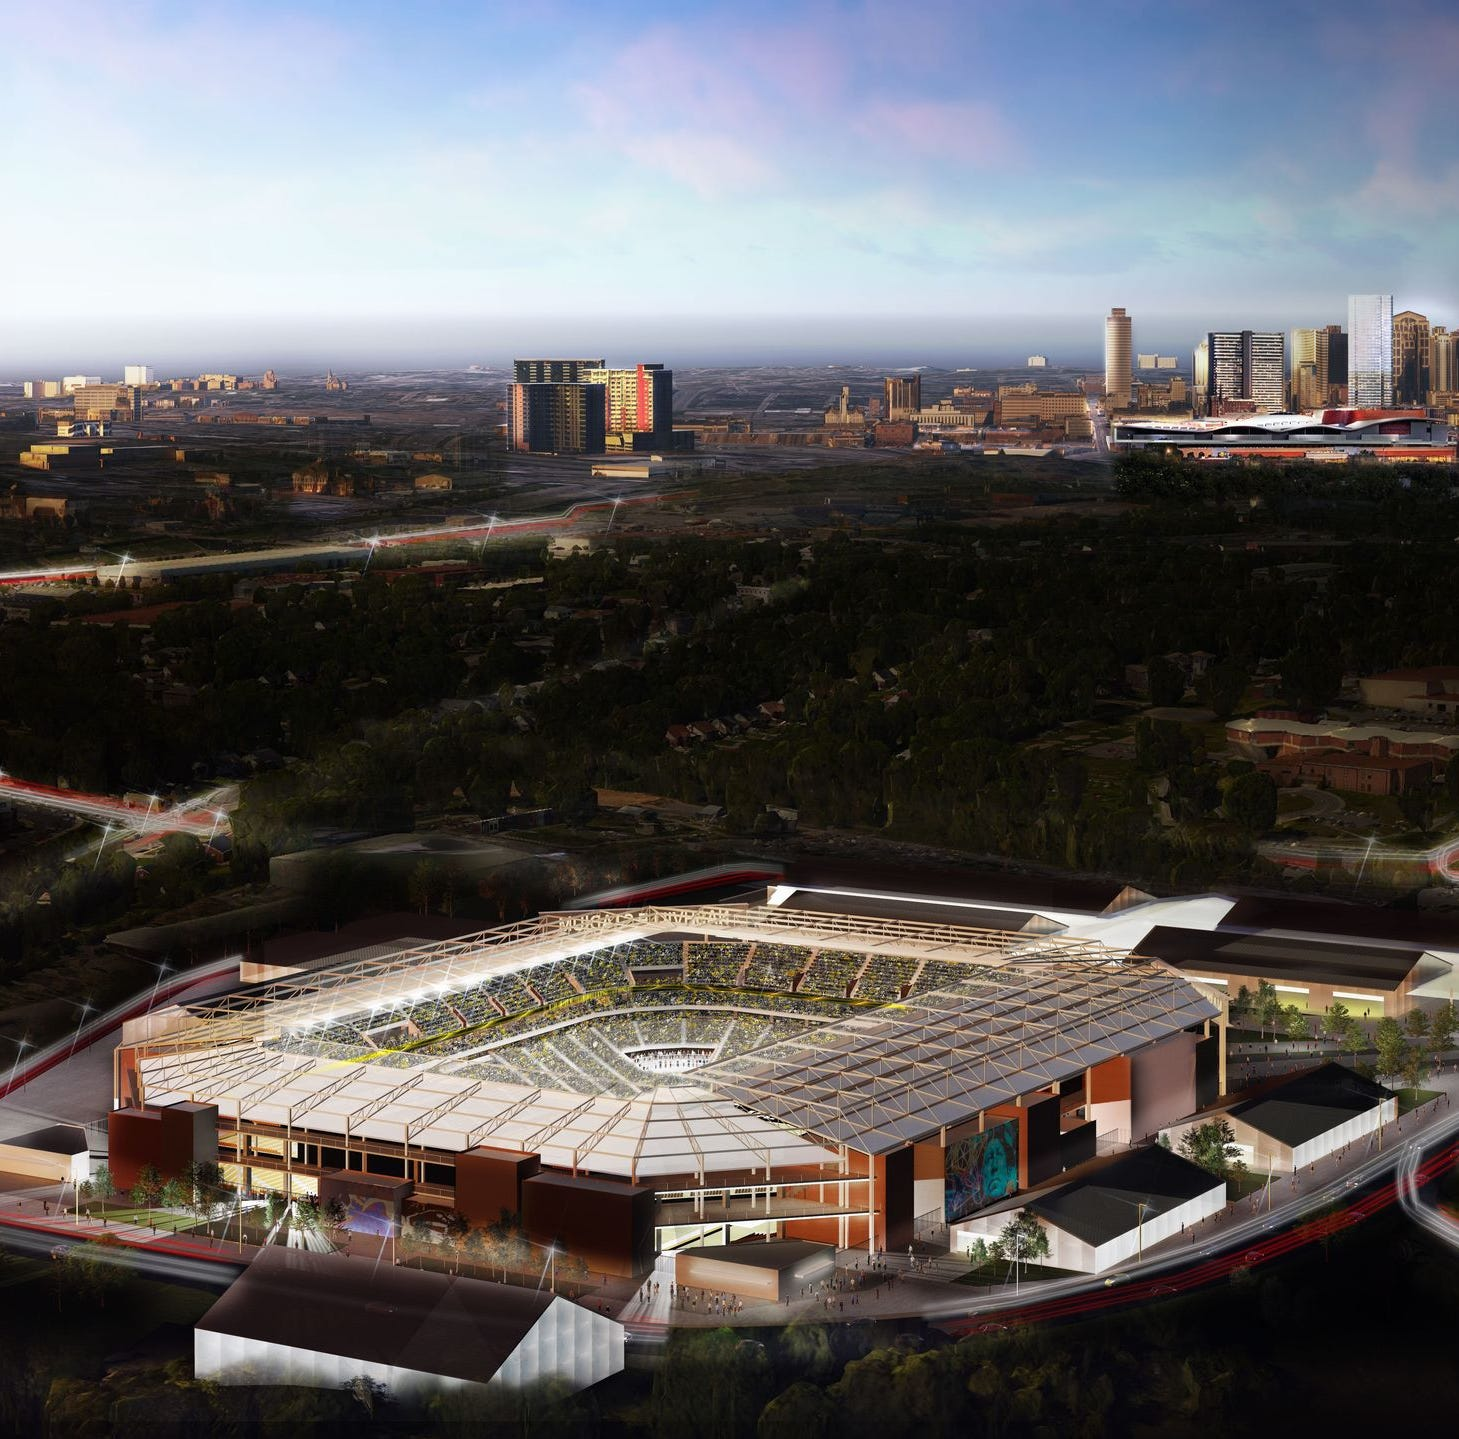 Nashville council members seek referendum to let public decide MLS stadium